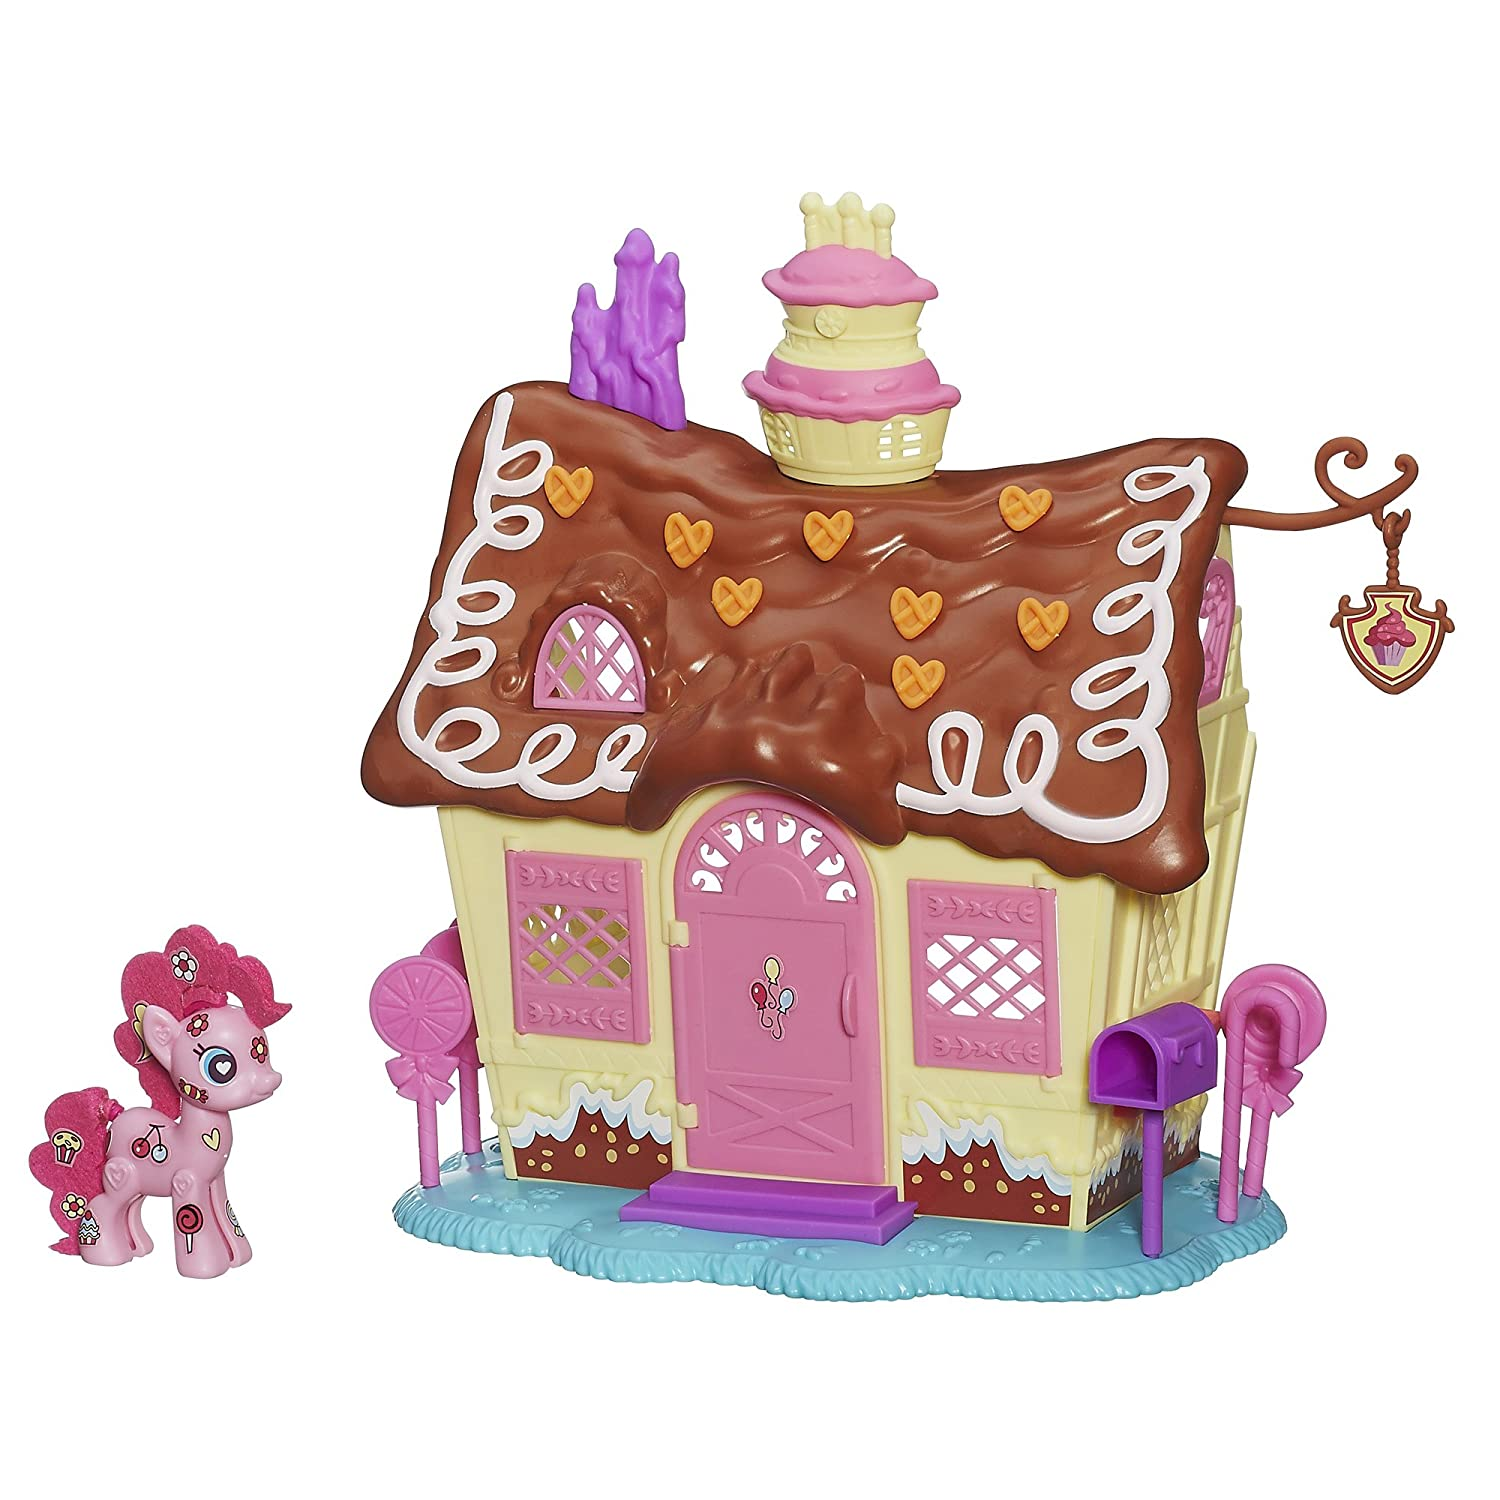 My Little Pony Pop Pinkie Pie Sweet Shoppe Playset